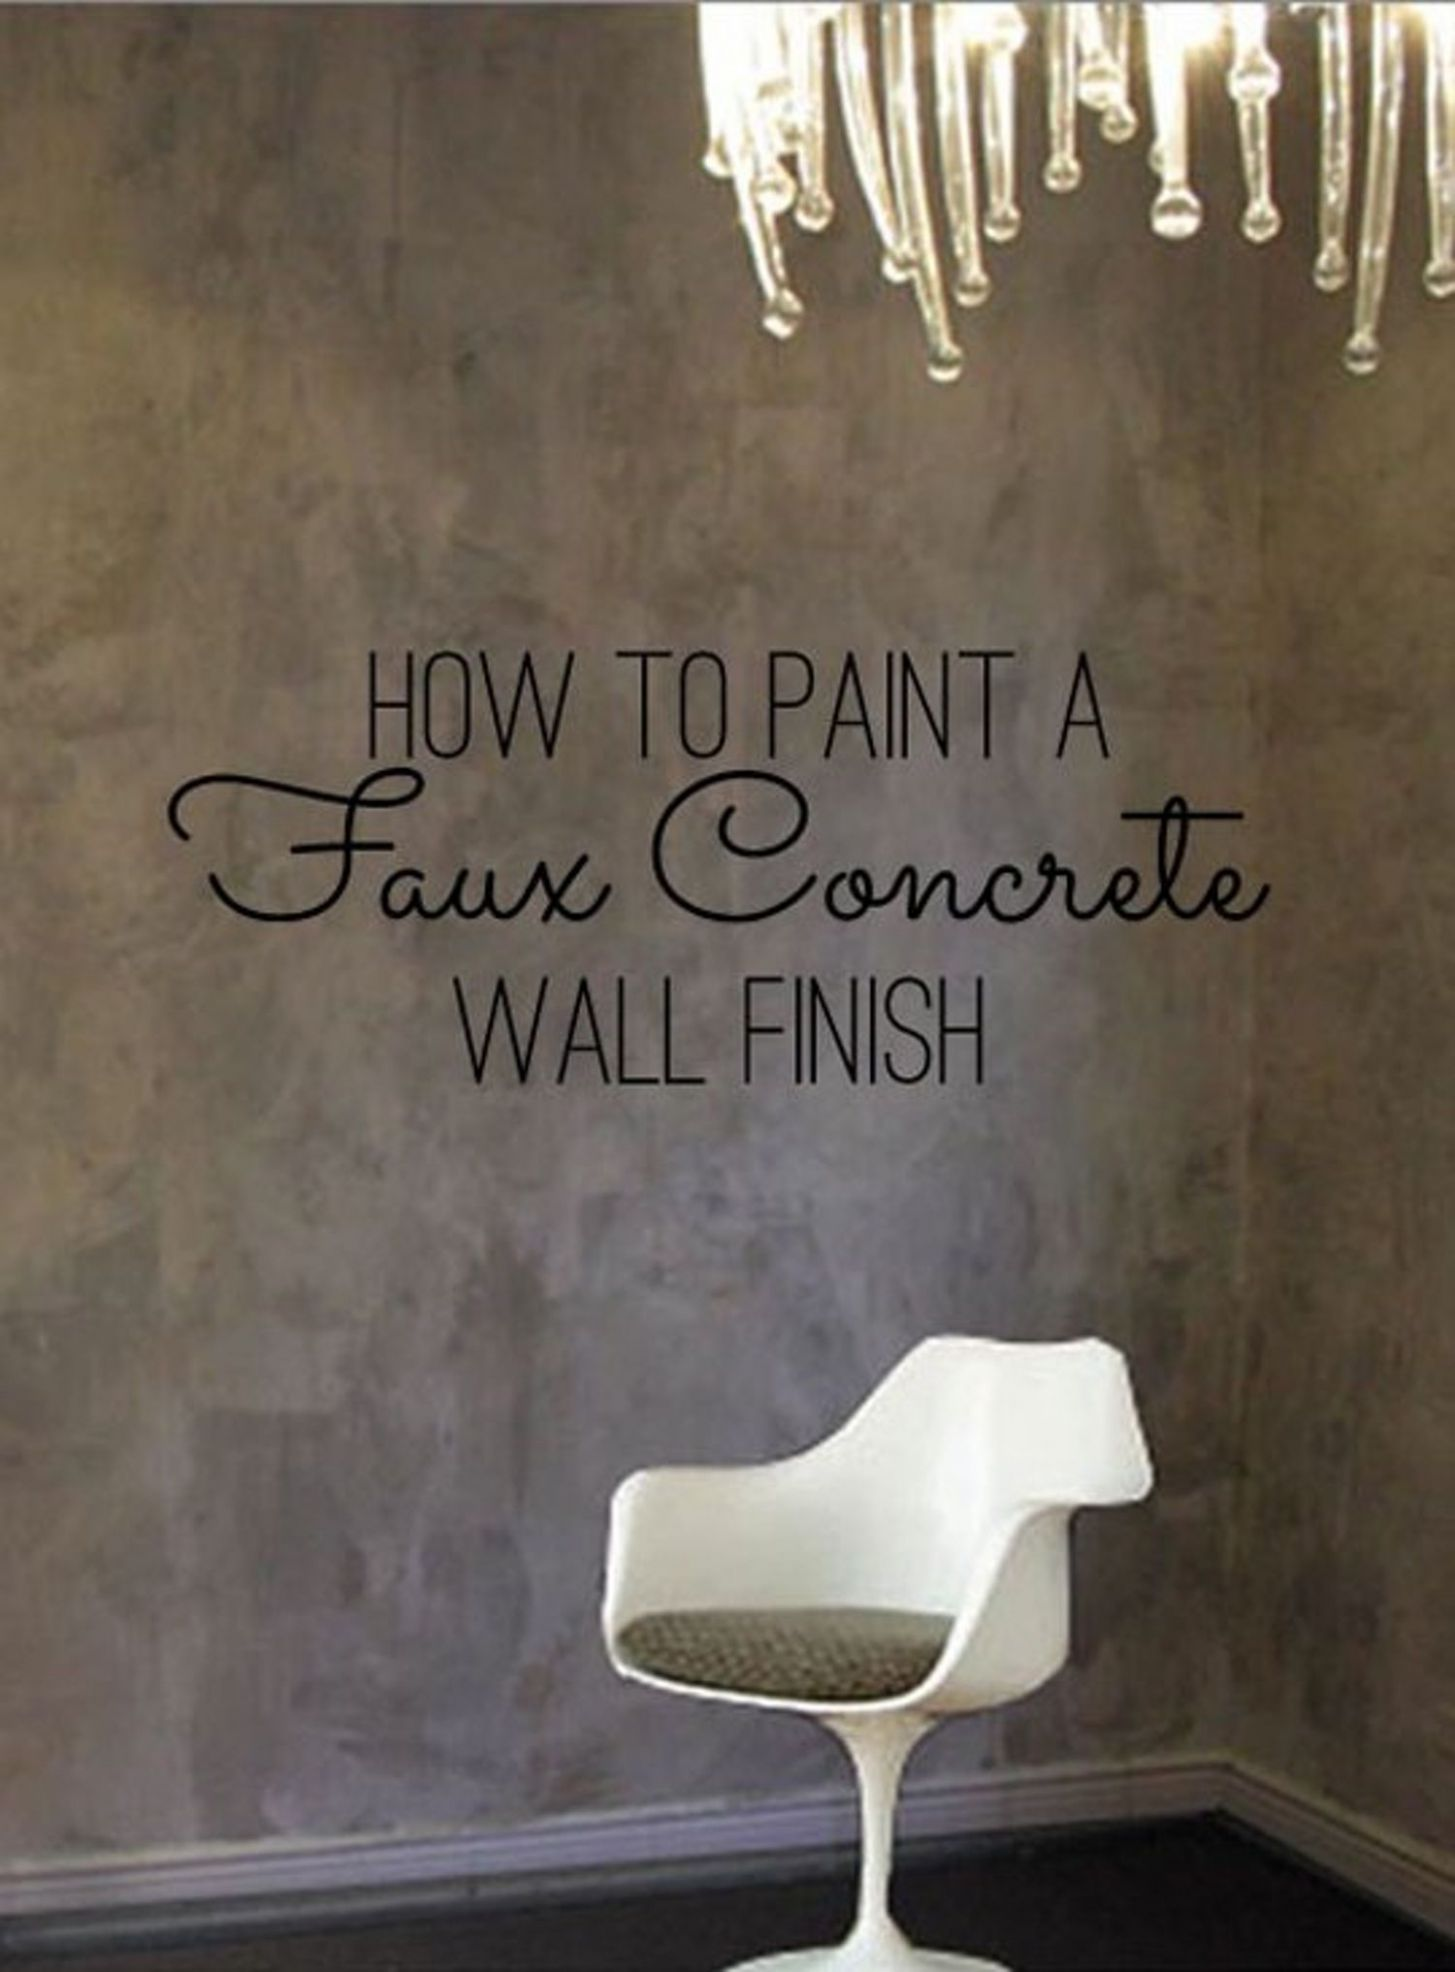 DIY Home Decor: How To Paint a Faux Concrete Wall Finish (With ...